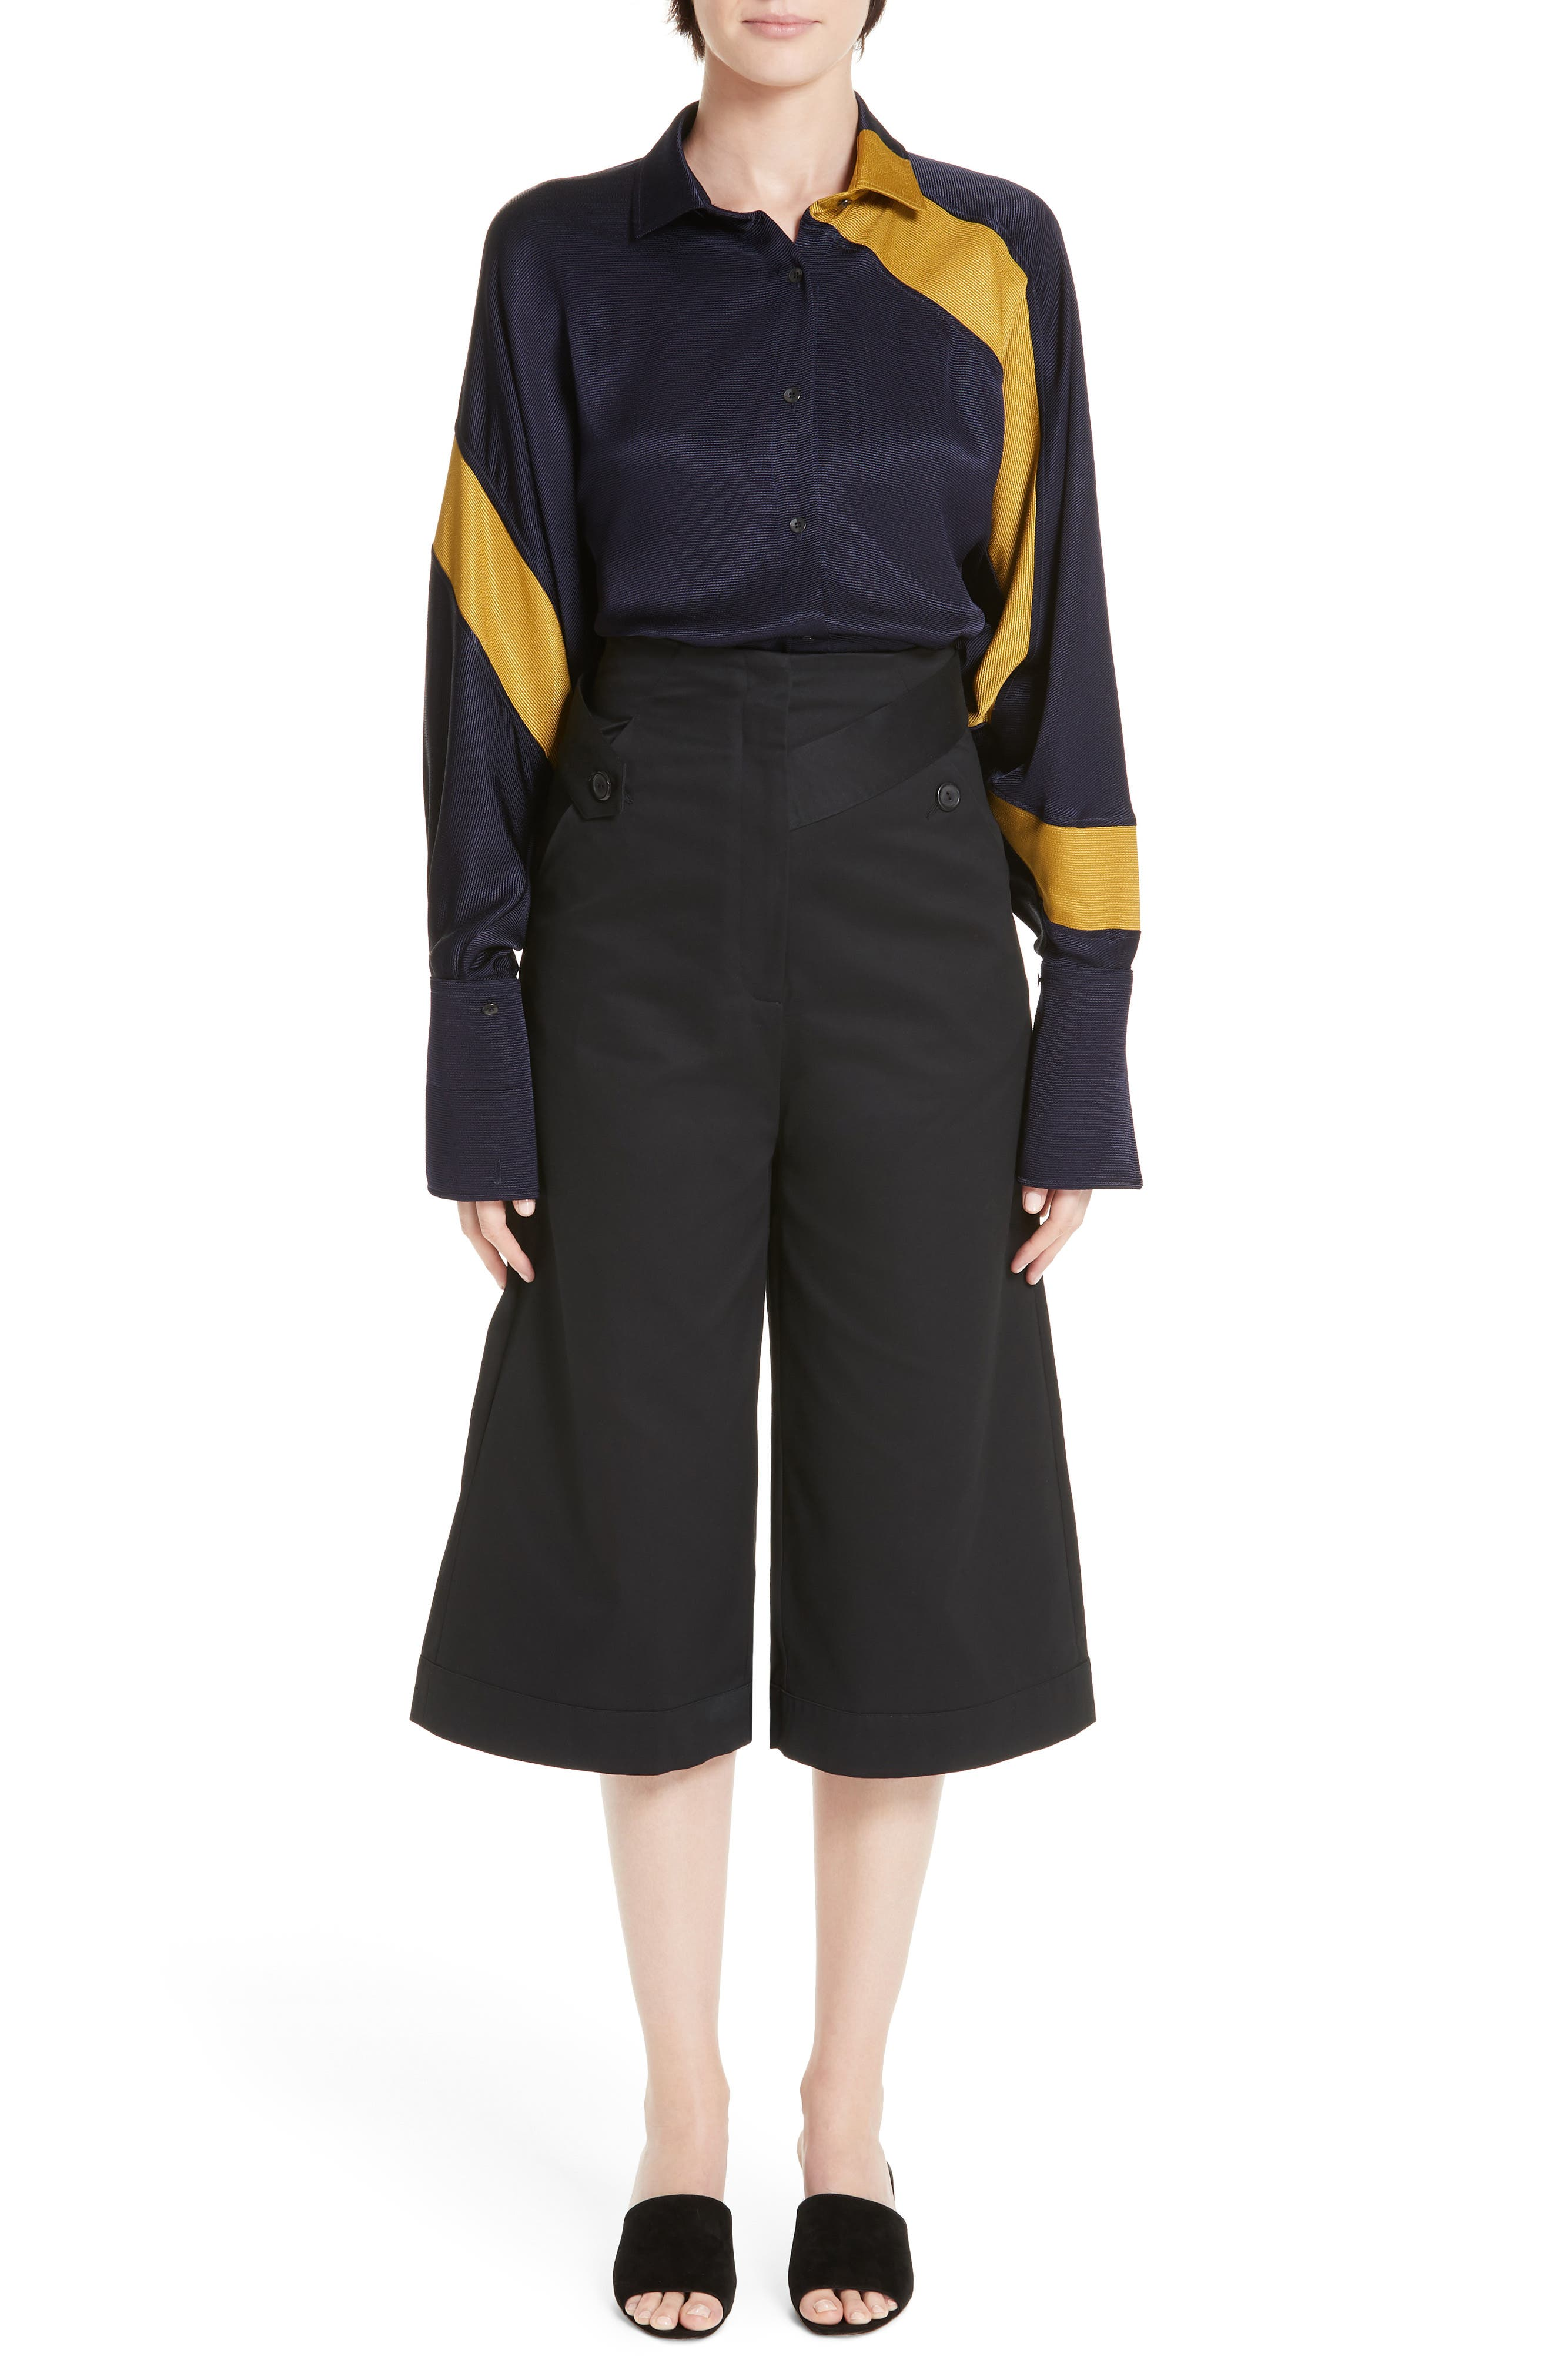 Palmer Harding Distorted Culottes,                             Alternate thumbnail 7, color,                             BLACK COTTON TWILL